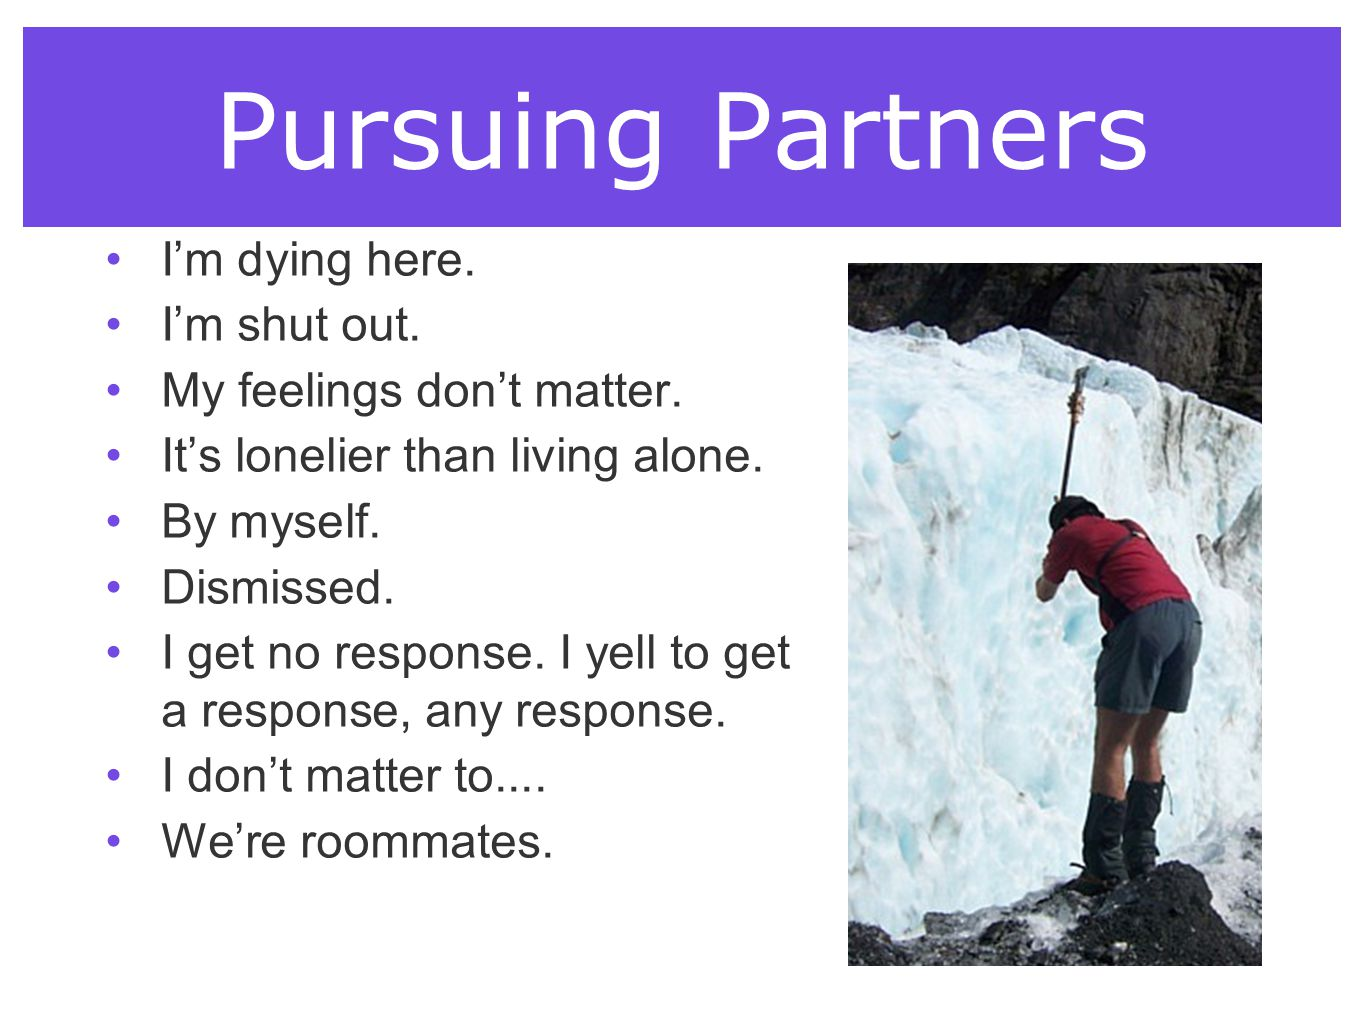 Pursuing Partners I'm dying here. I'm shut out. My feelings don't matter. It's lonelier than living alone. By myself. Dismissed. I get no response. I